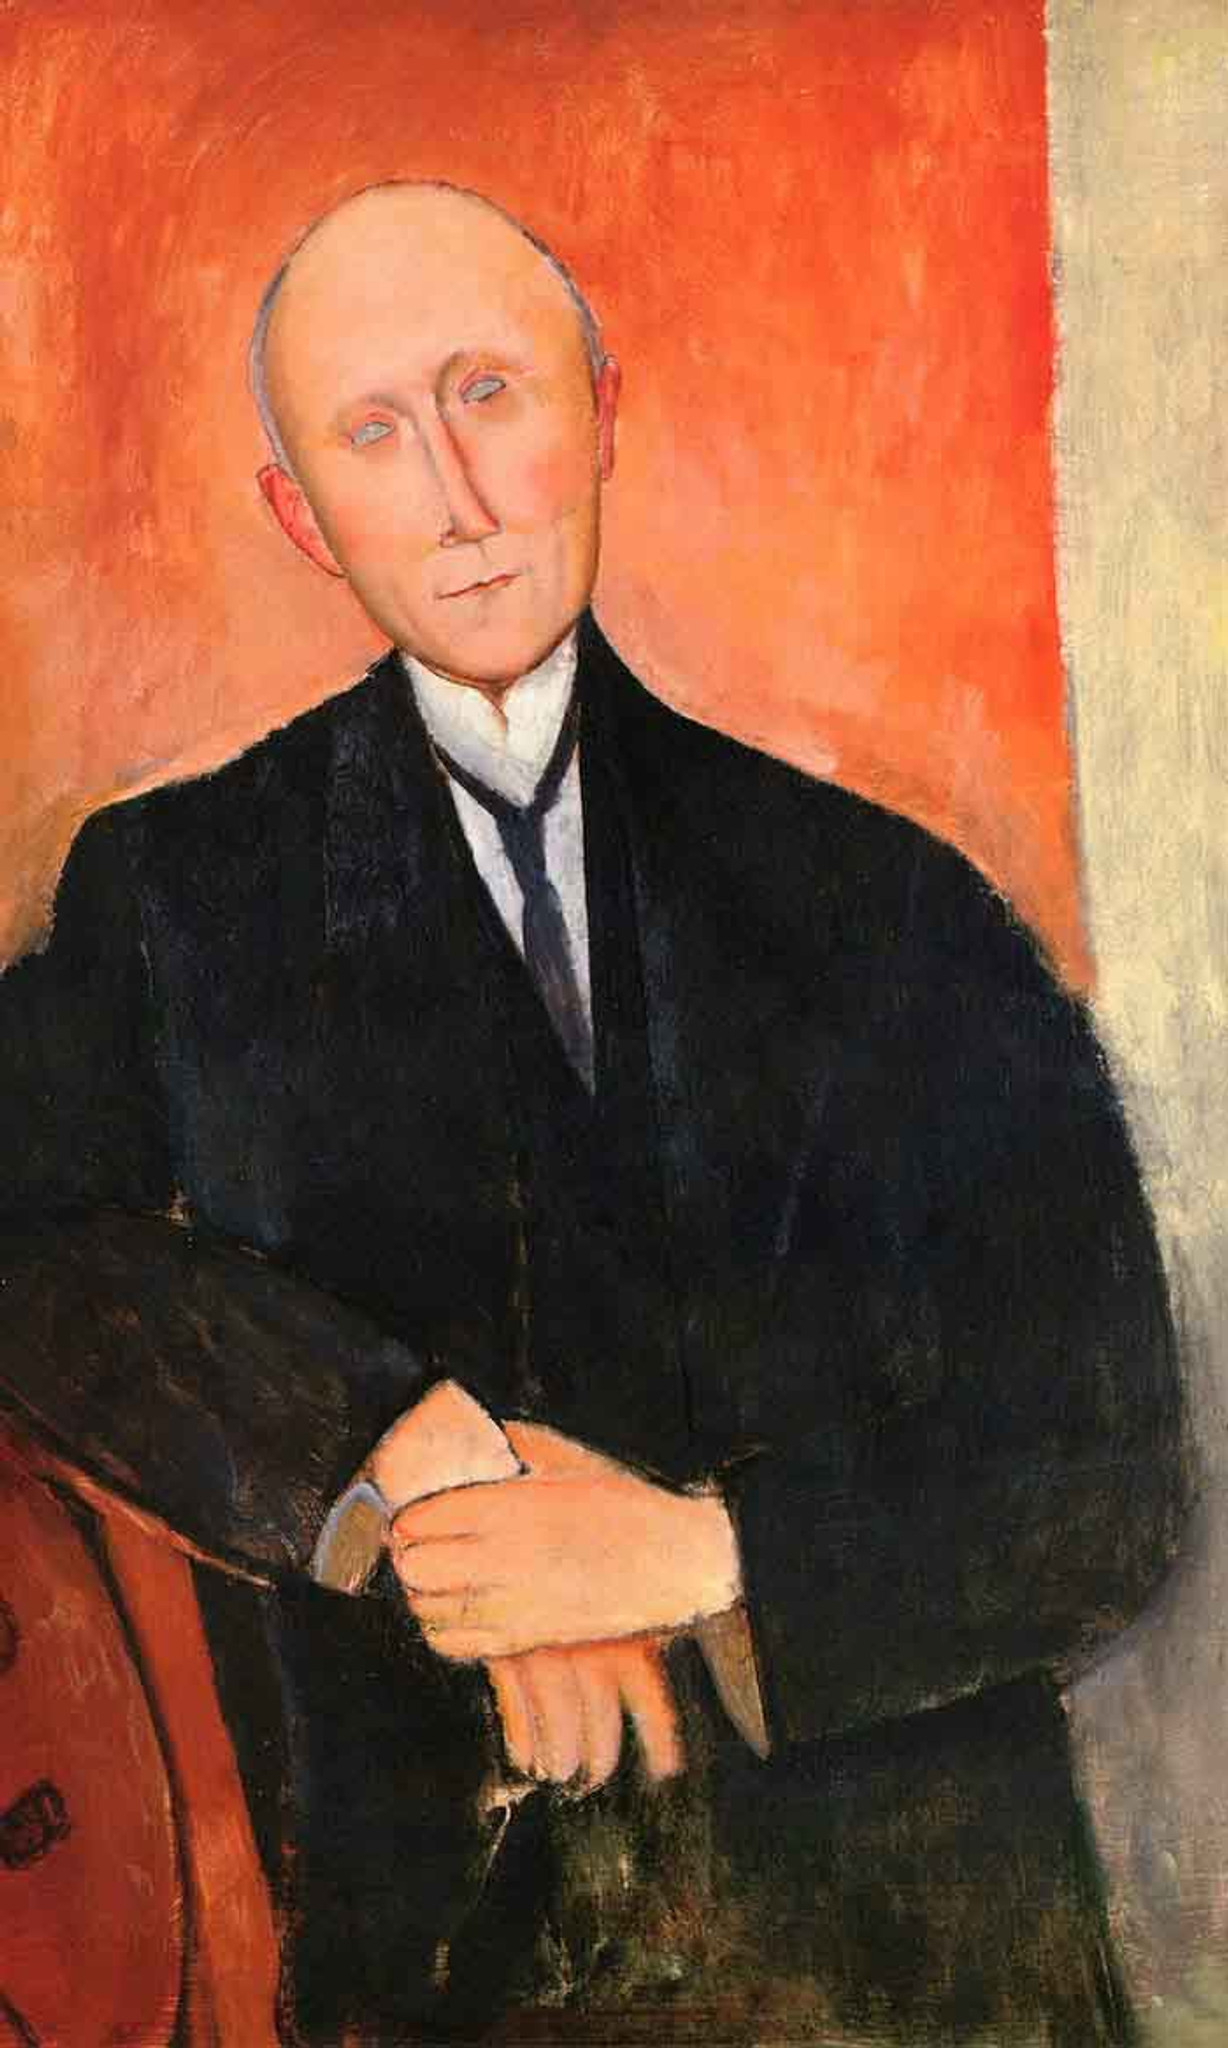 Seated Man With Orange Background By Amedeo Modigliani Print or Painting  Reproduction